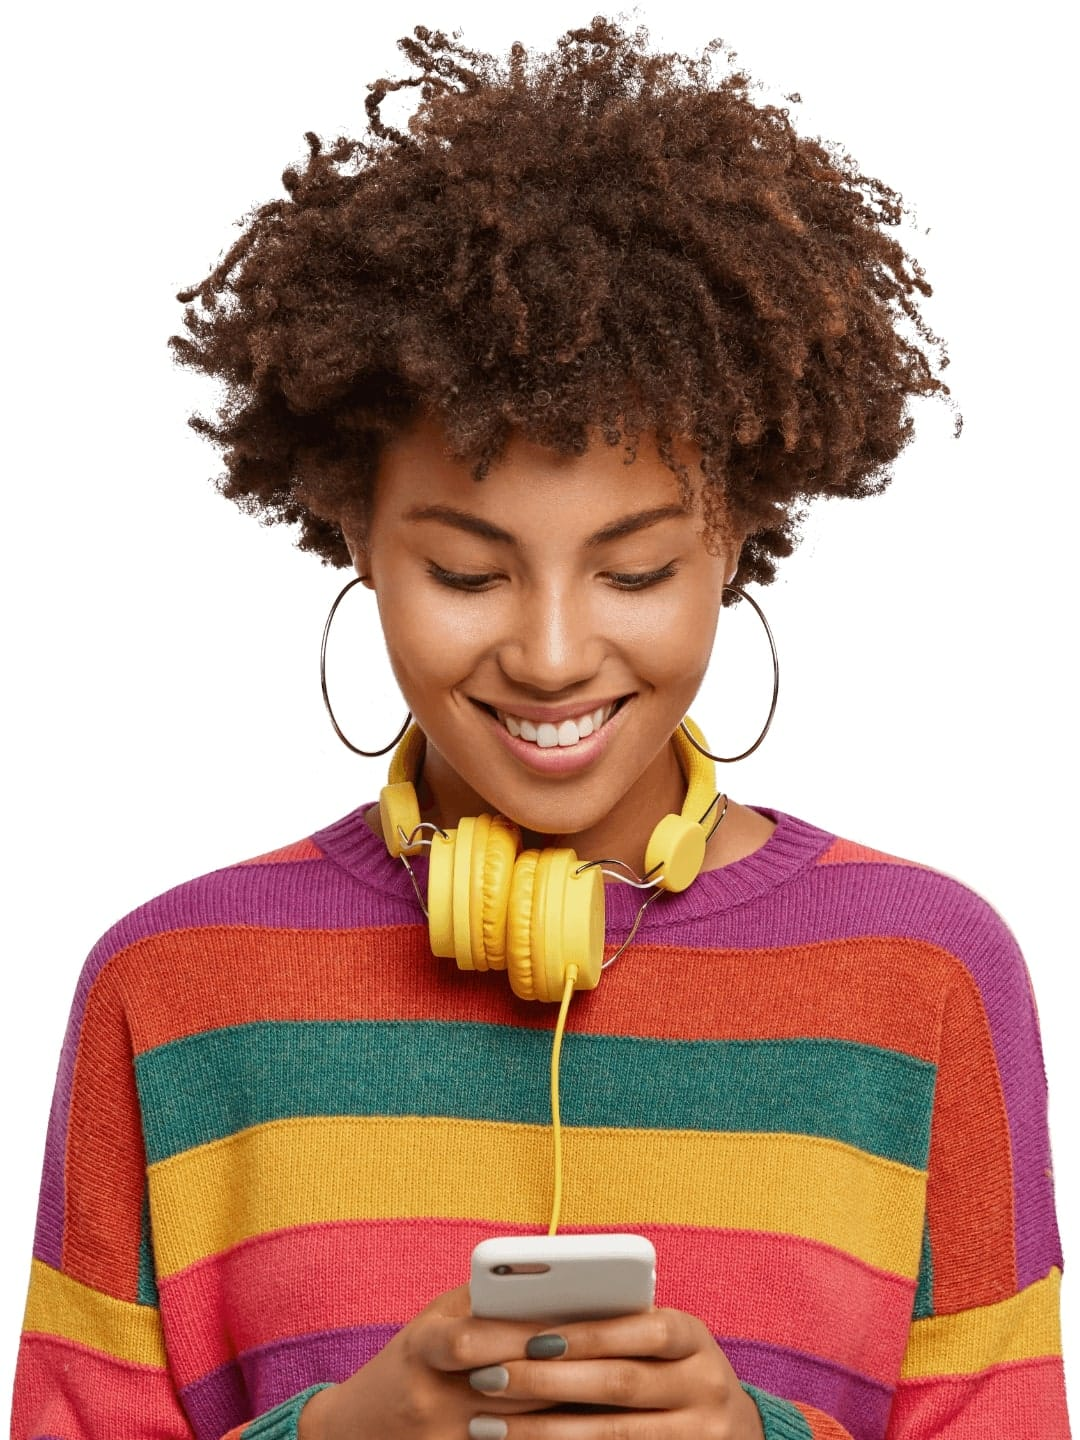 An image of a woman in a brightly colored sweater with yellow headphones, smiling while choosing a podcast to listen to on her mobile phone.